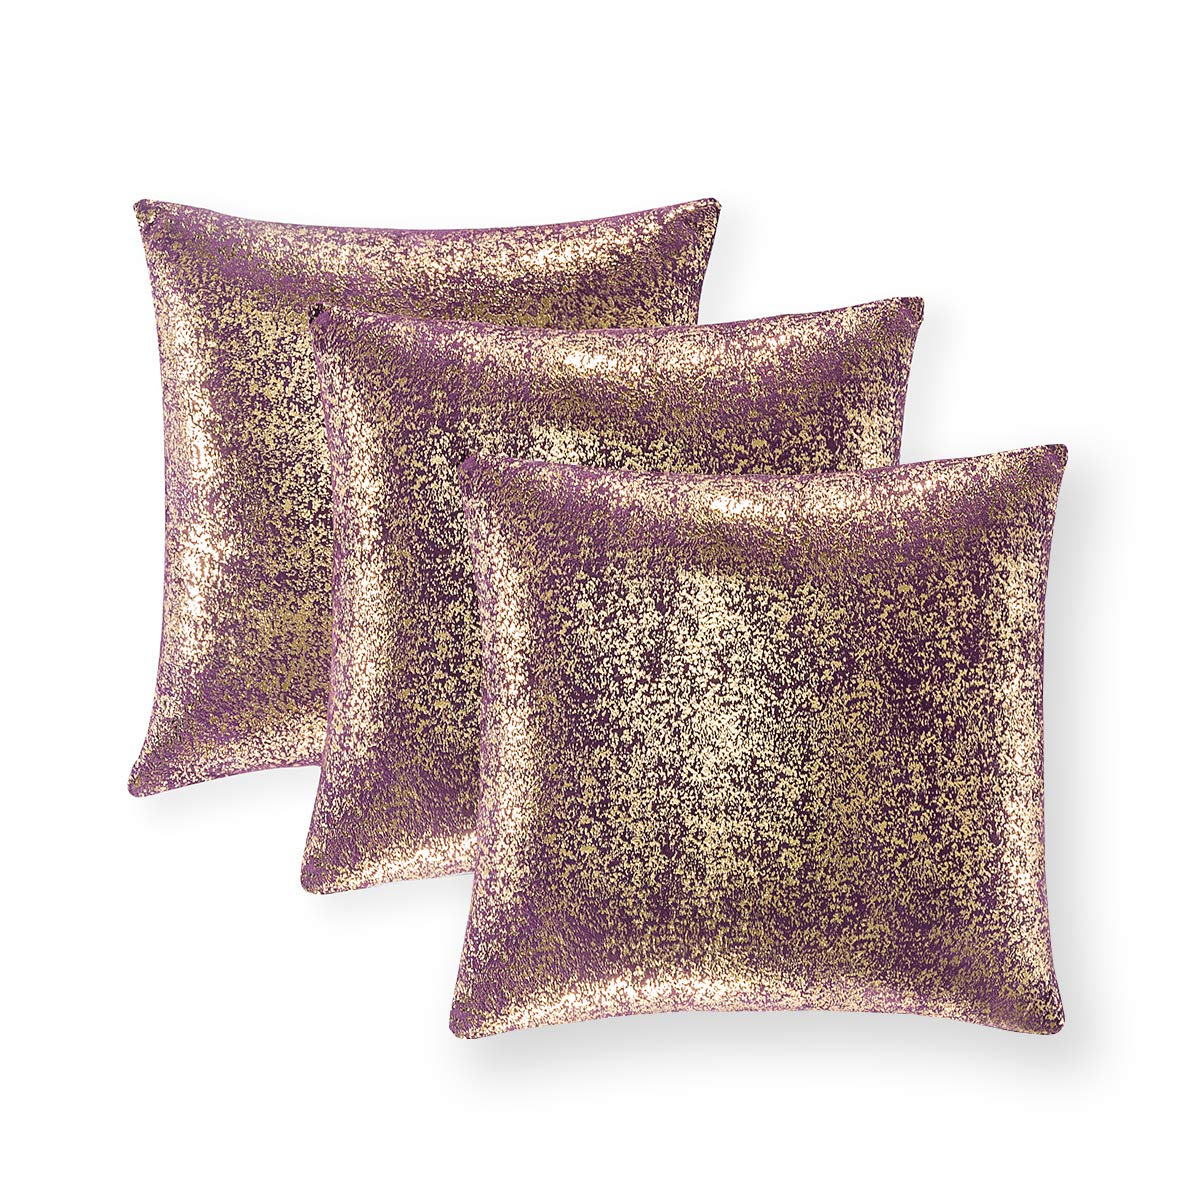 Set of 3, Throw Pillow Covers, Cushion Cases, Decorative Square Pillow Case, Slipover Pillowslip for Home Sofa Couch Chair Back Seat Bedroom Car, Invisible Zipper, 18 x18In (Bronzing- Lavender Purple)